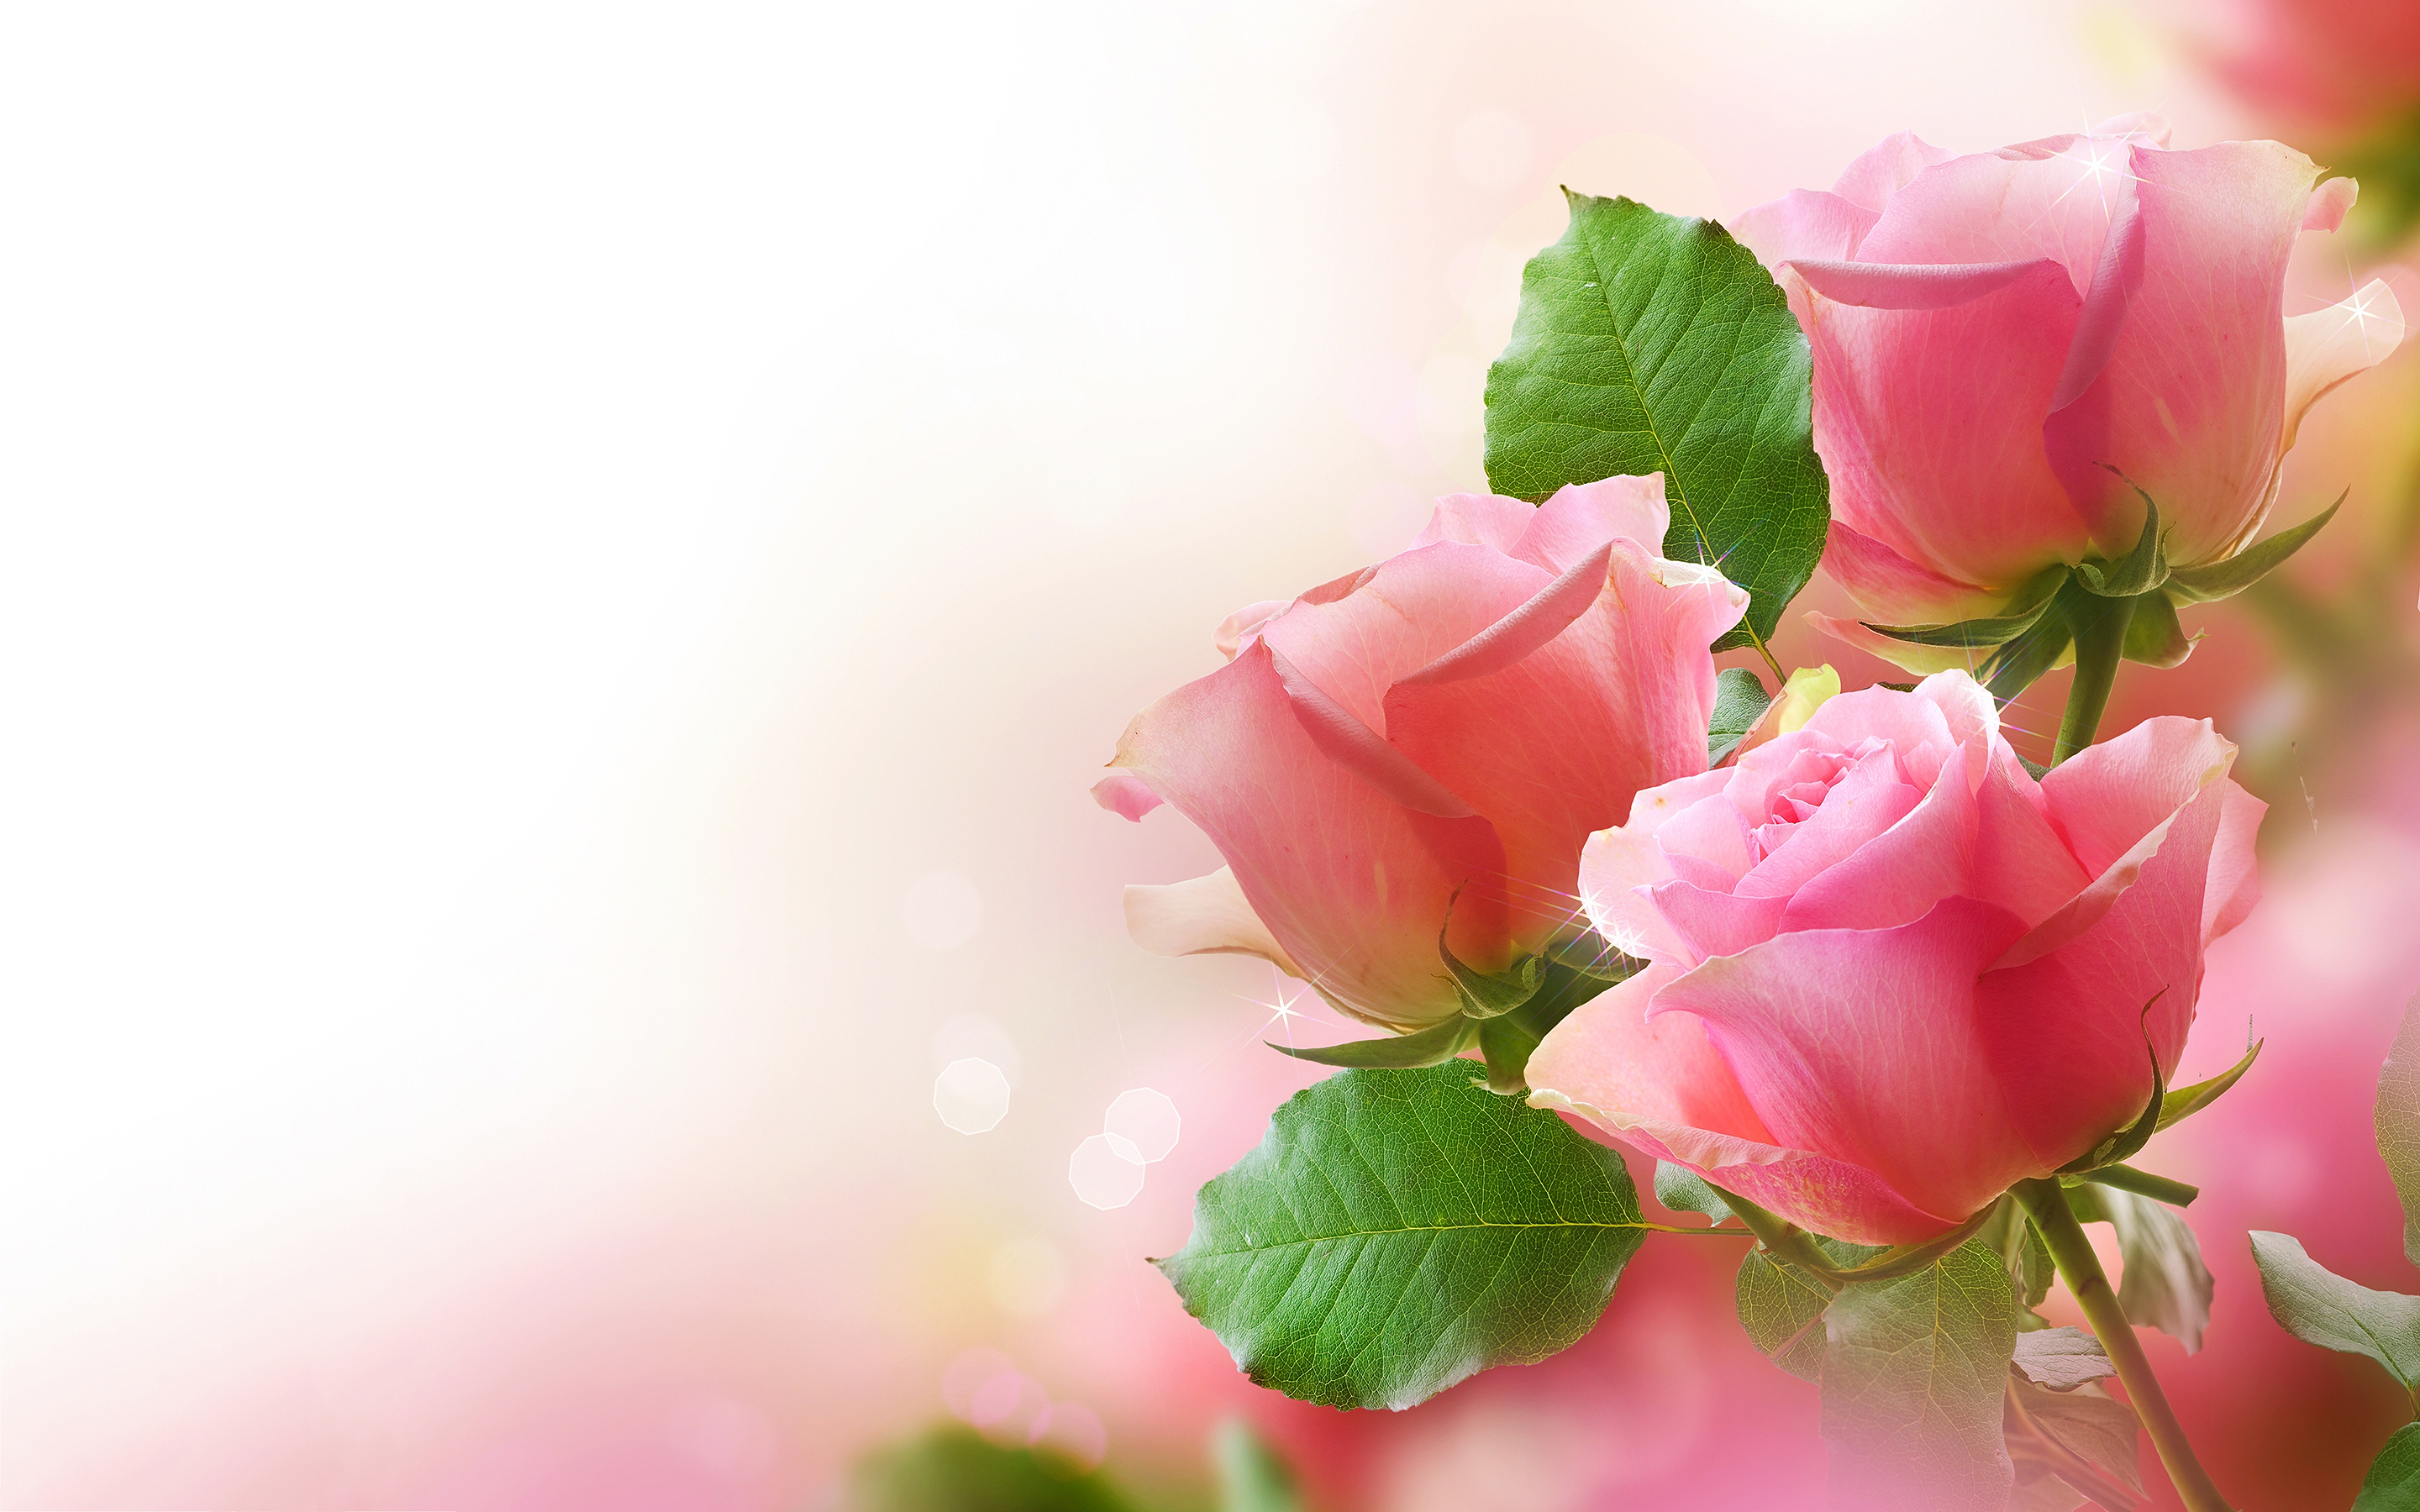 Roses Pretty Pink RosesRed Roses Wallpaper Desktop Background